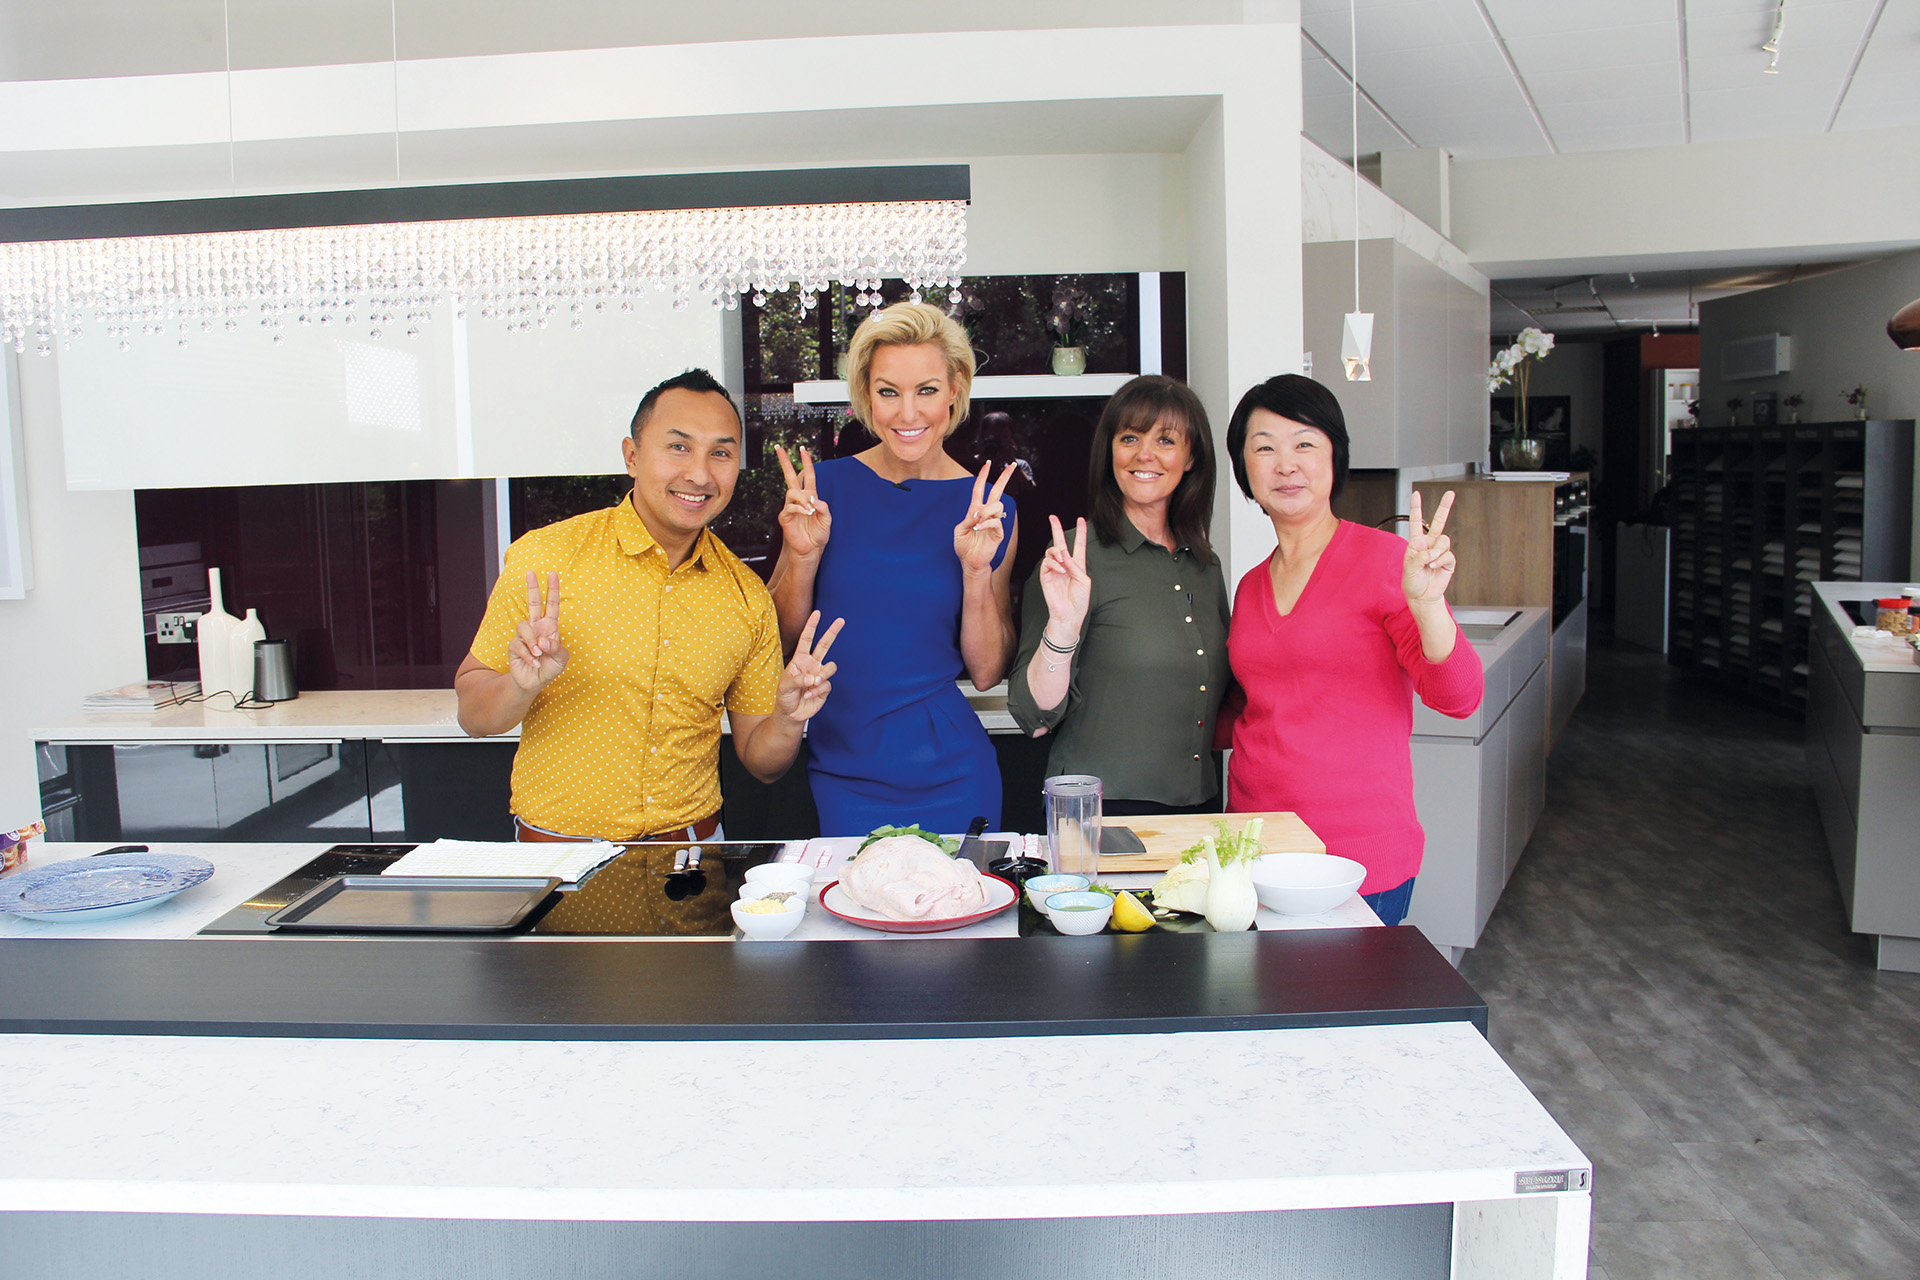 Dancer Natalie Lowe, Chef Norman Musa and Nutritionist Jeannette Jackson at truKitchen kitchen showroom Wilmslow